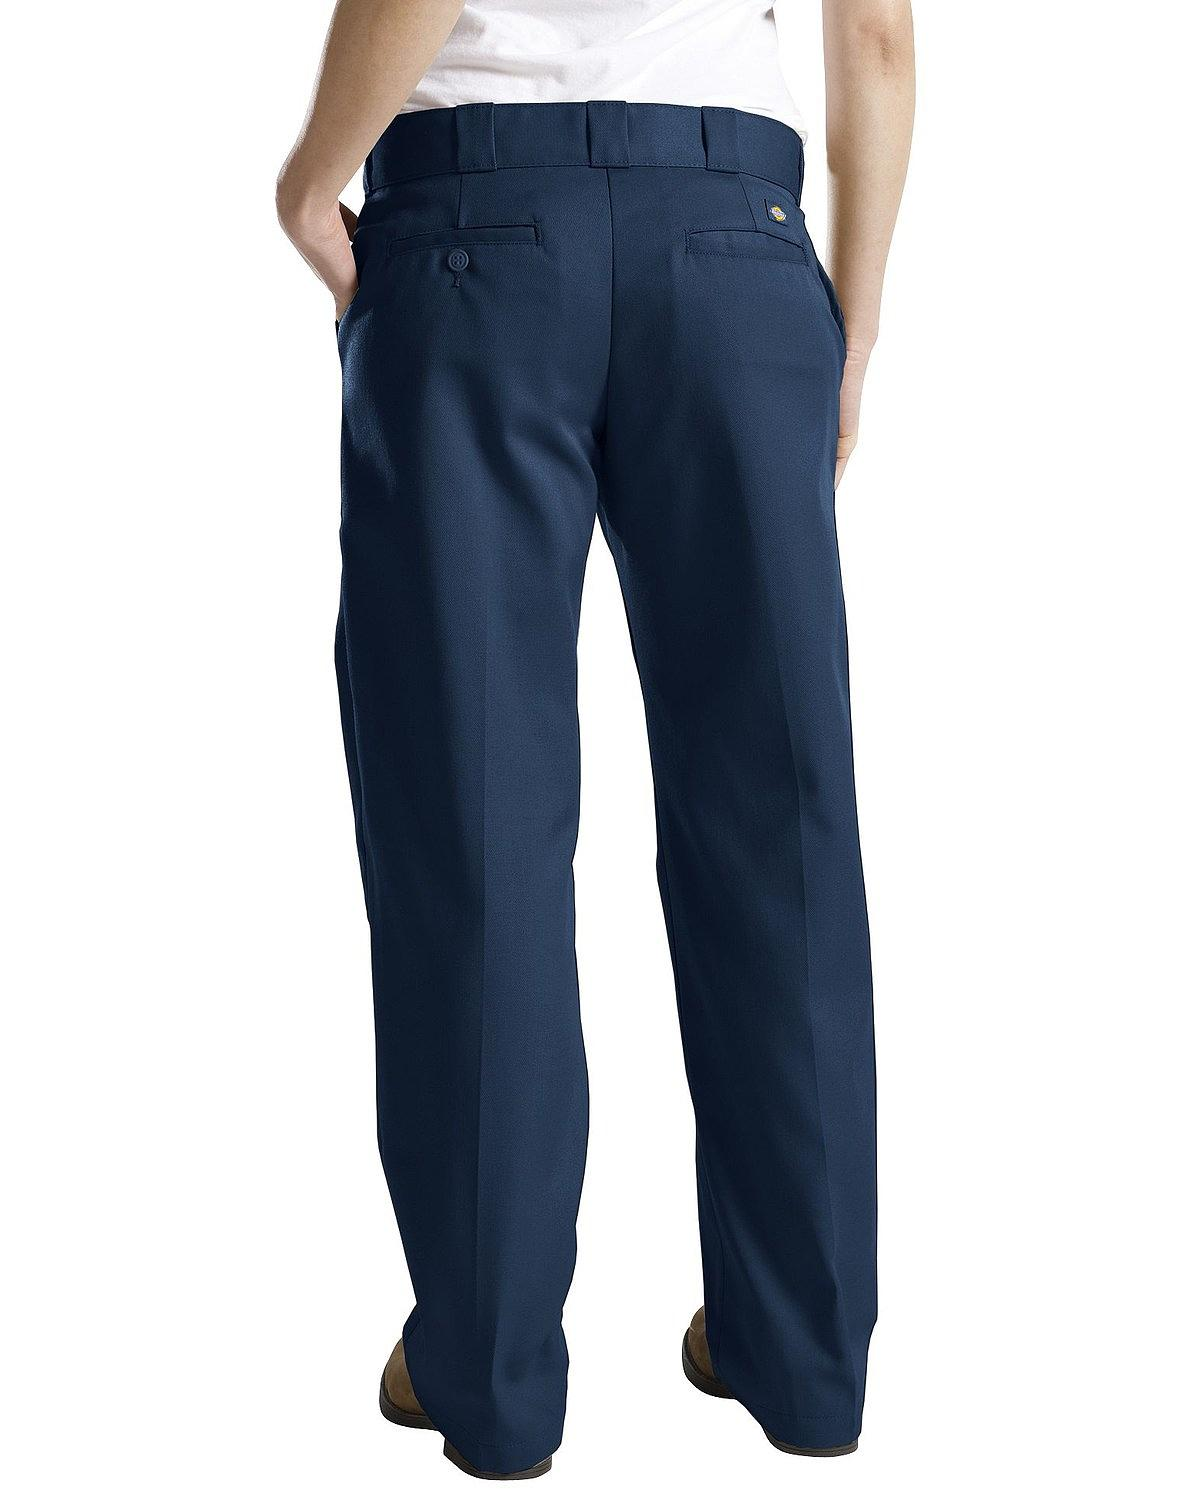 New Dickies Pants Women Pleated Front Work Pant Straight Leg FP220 Black